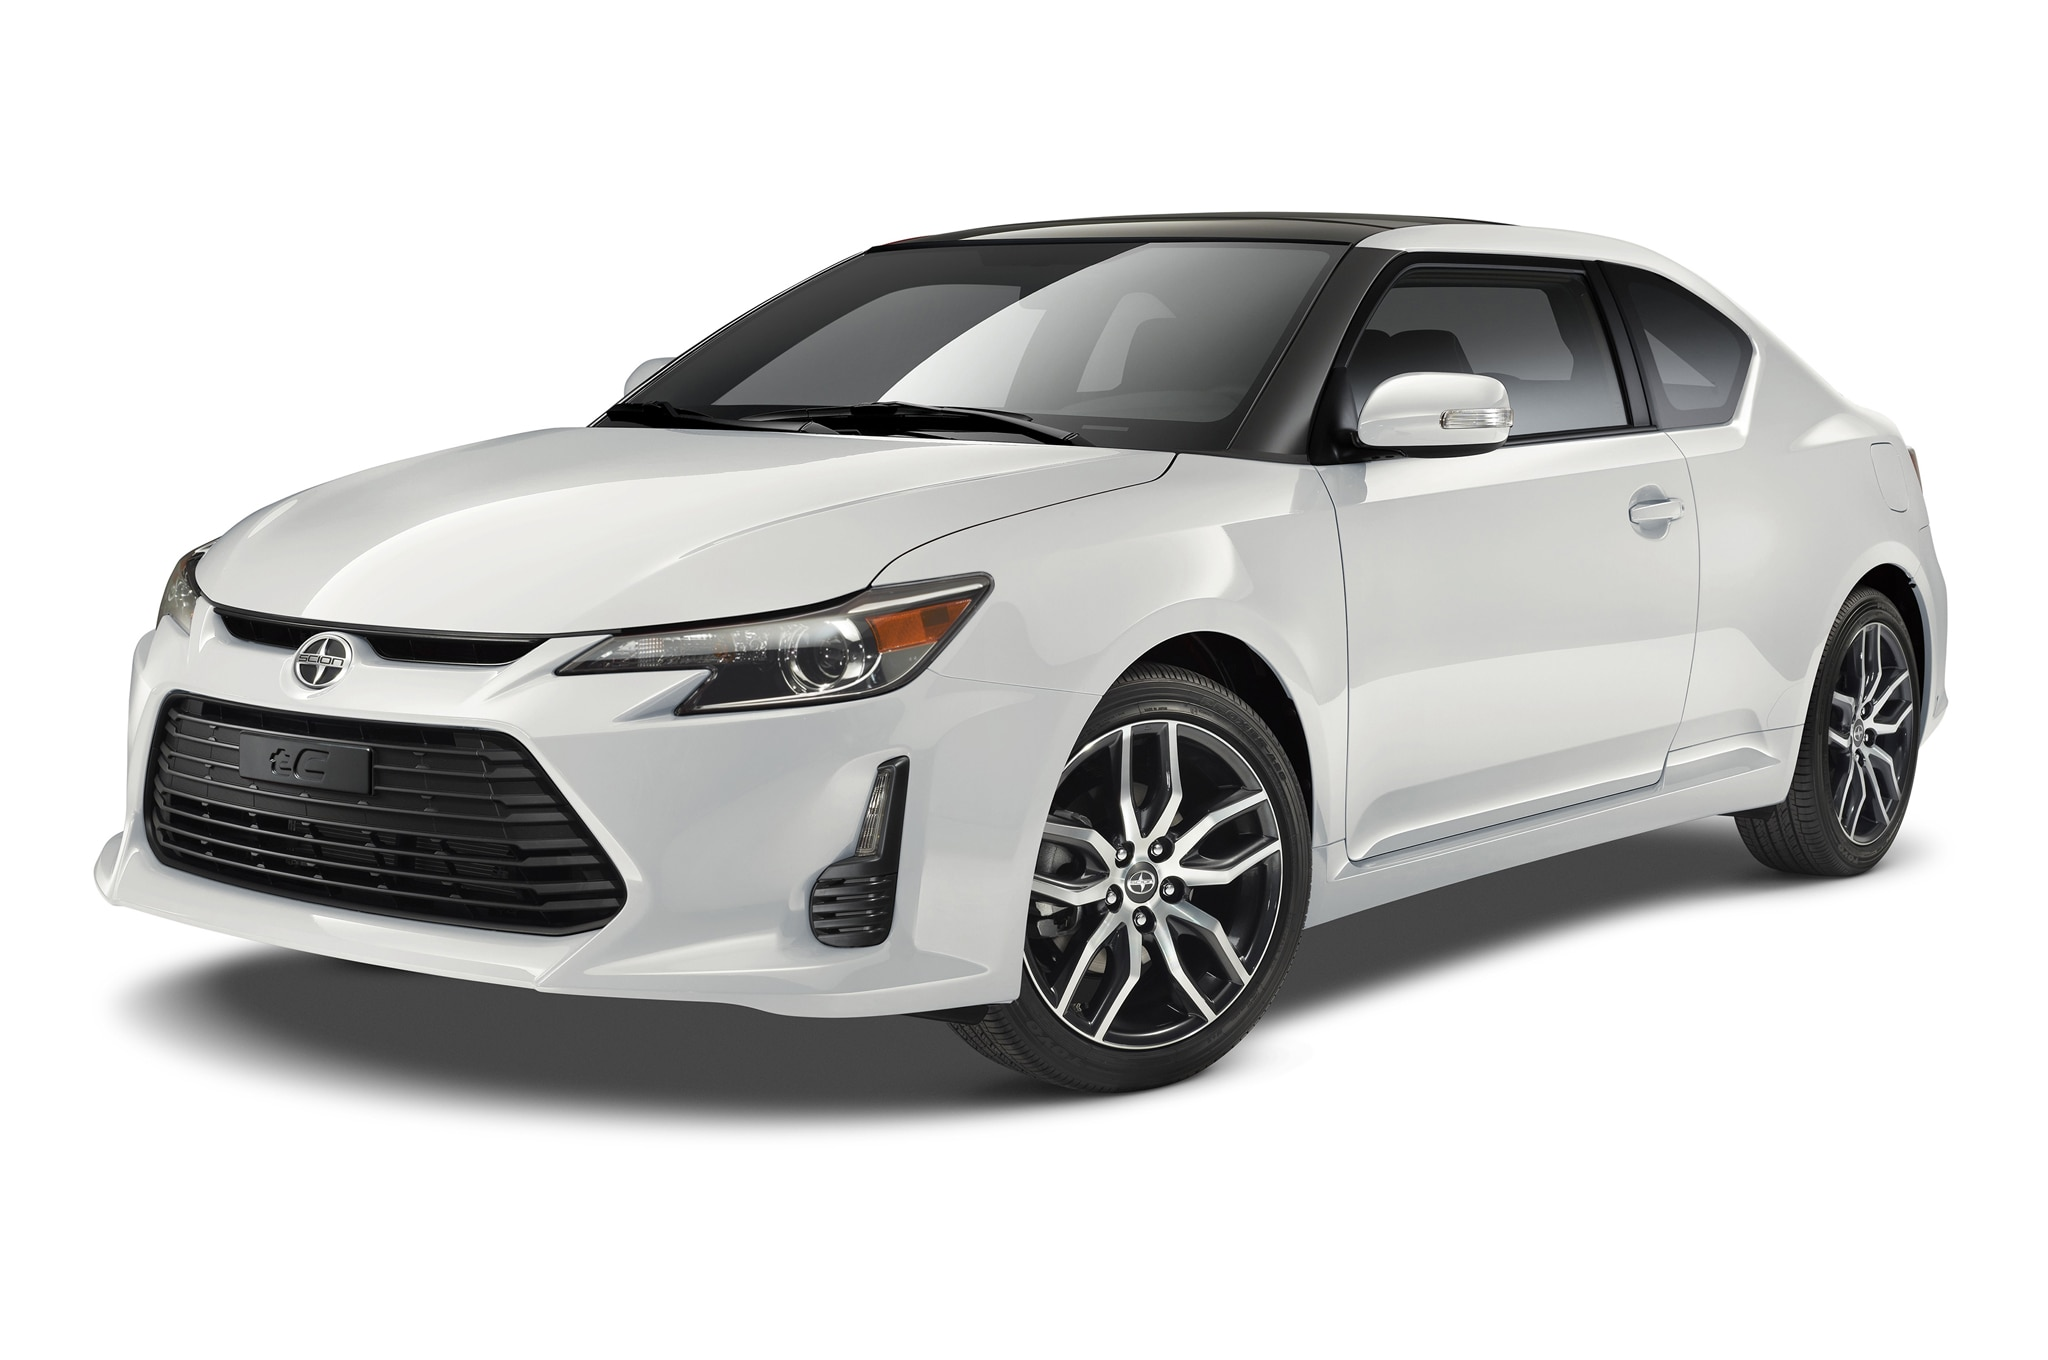 2015 scion fr s receives suspension tweaks automobile magazine. Black Bedroom Furniture Sets. Home Design Ideas